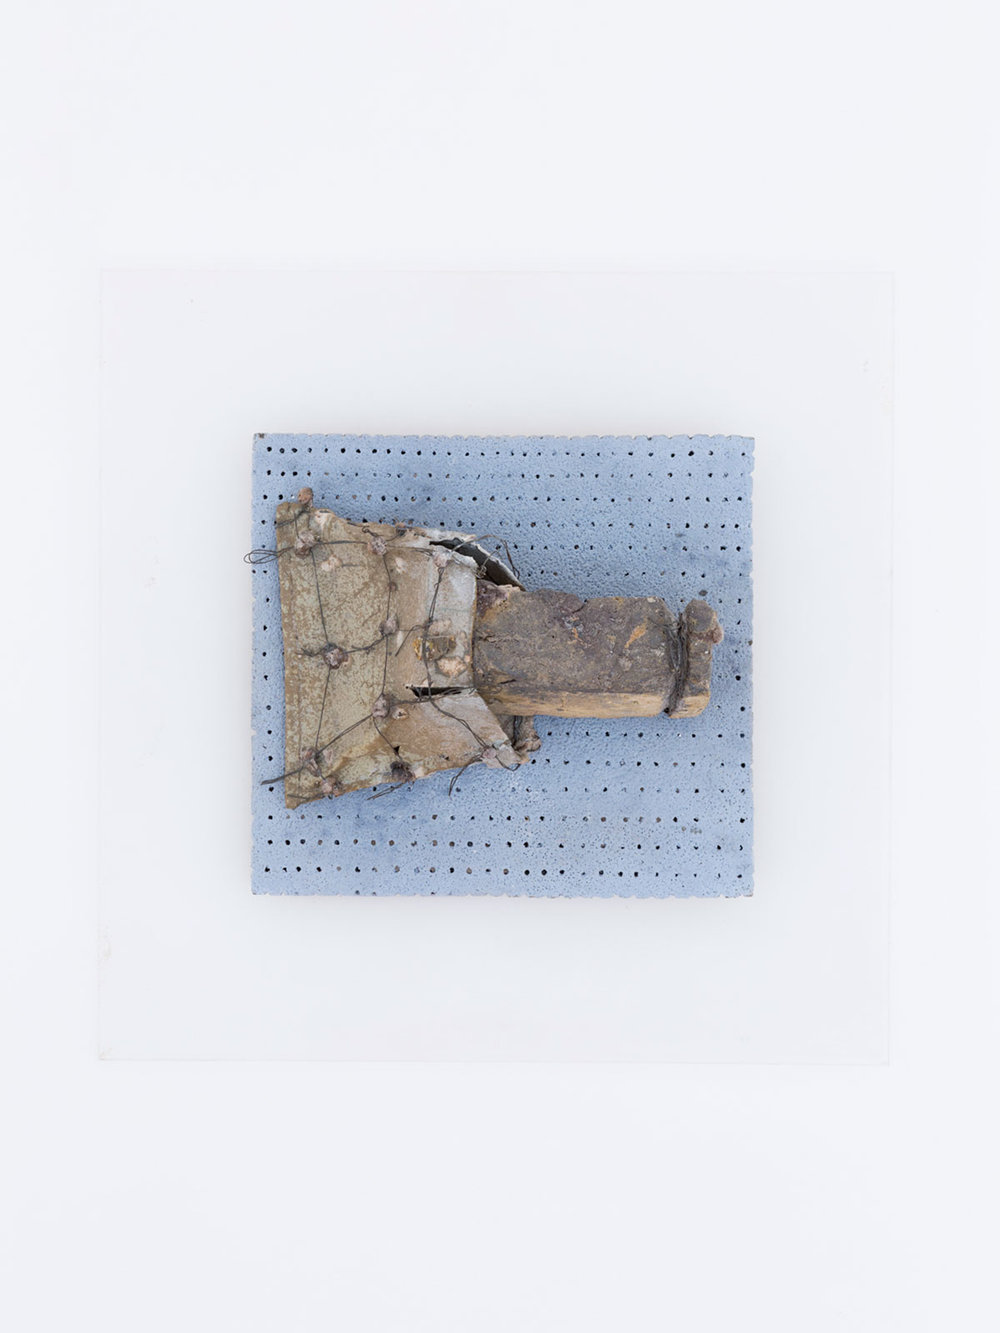 8.Wall-mounted-brick-bag-1981-Melted-brick-in-fibreglass-bag-ceramic-wire-58-x-58-x-15-cm - Copy.jpg